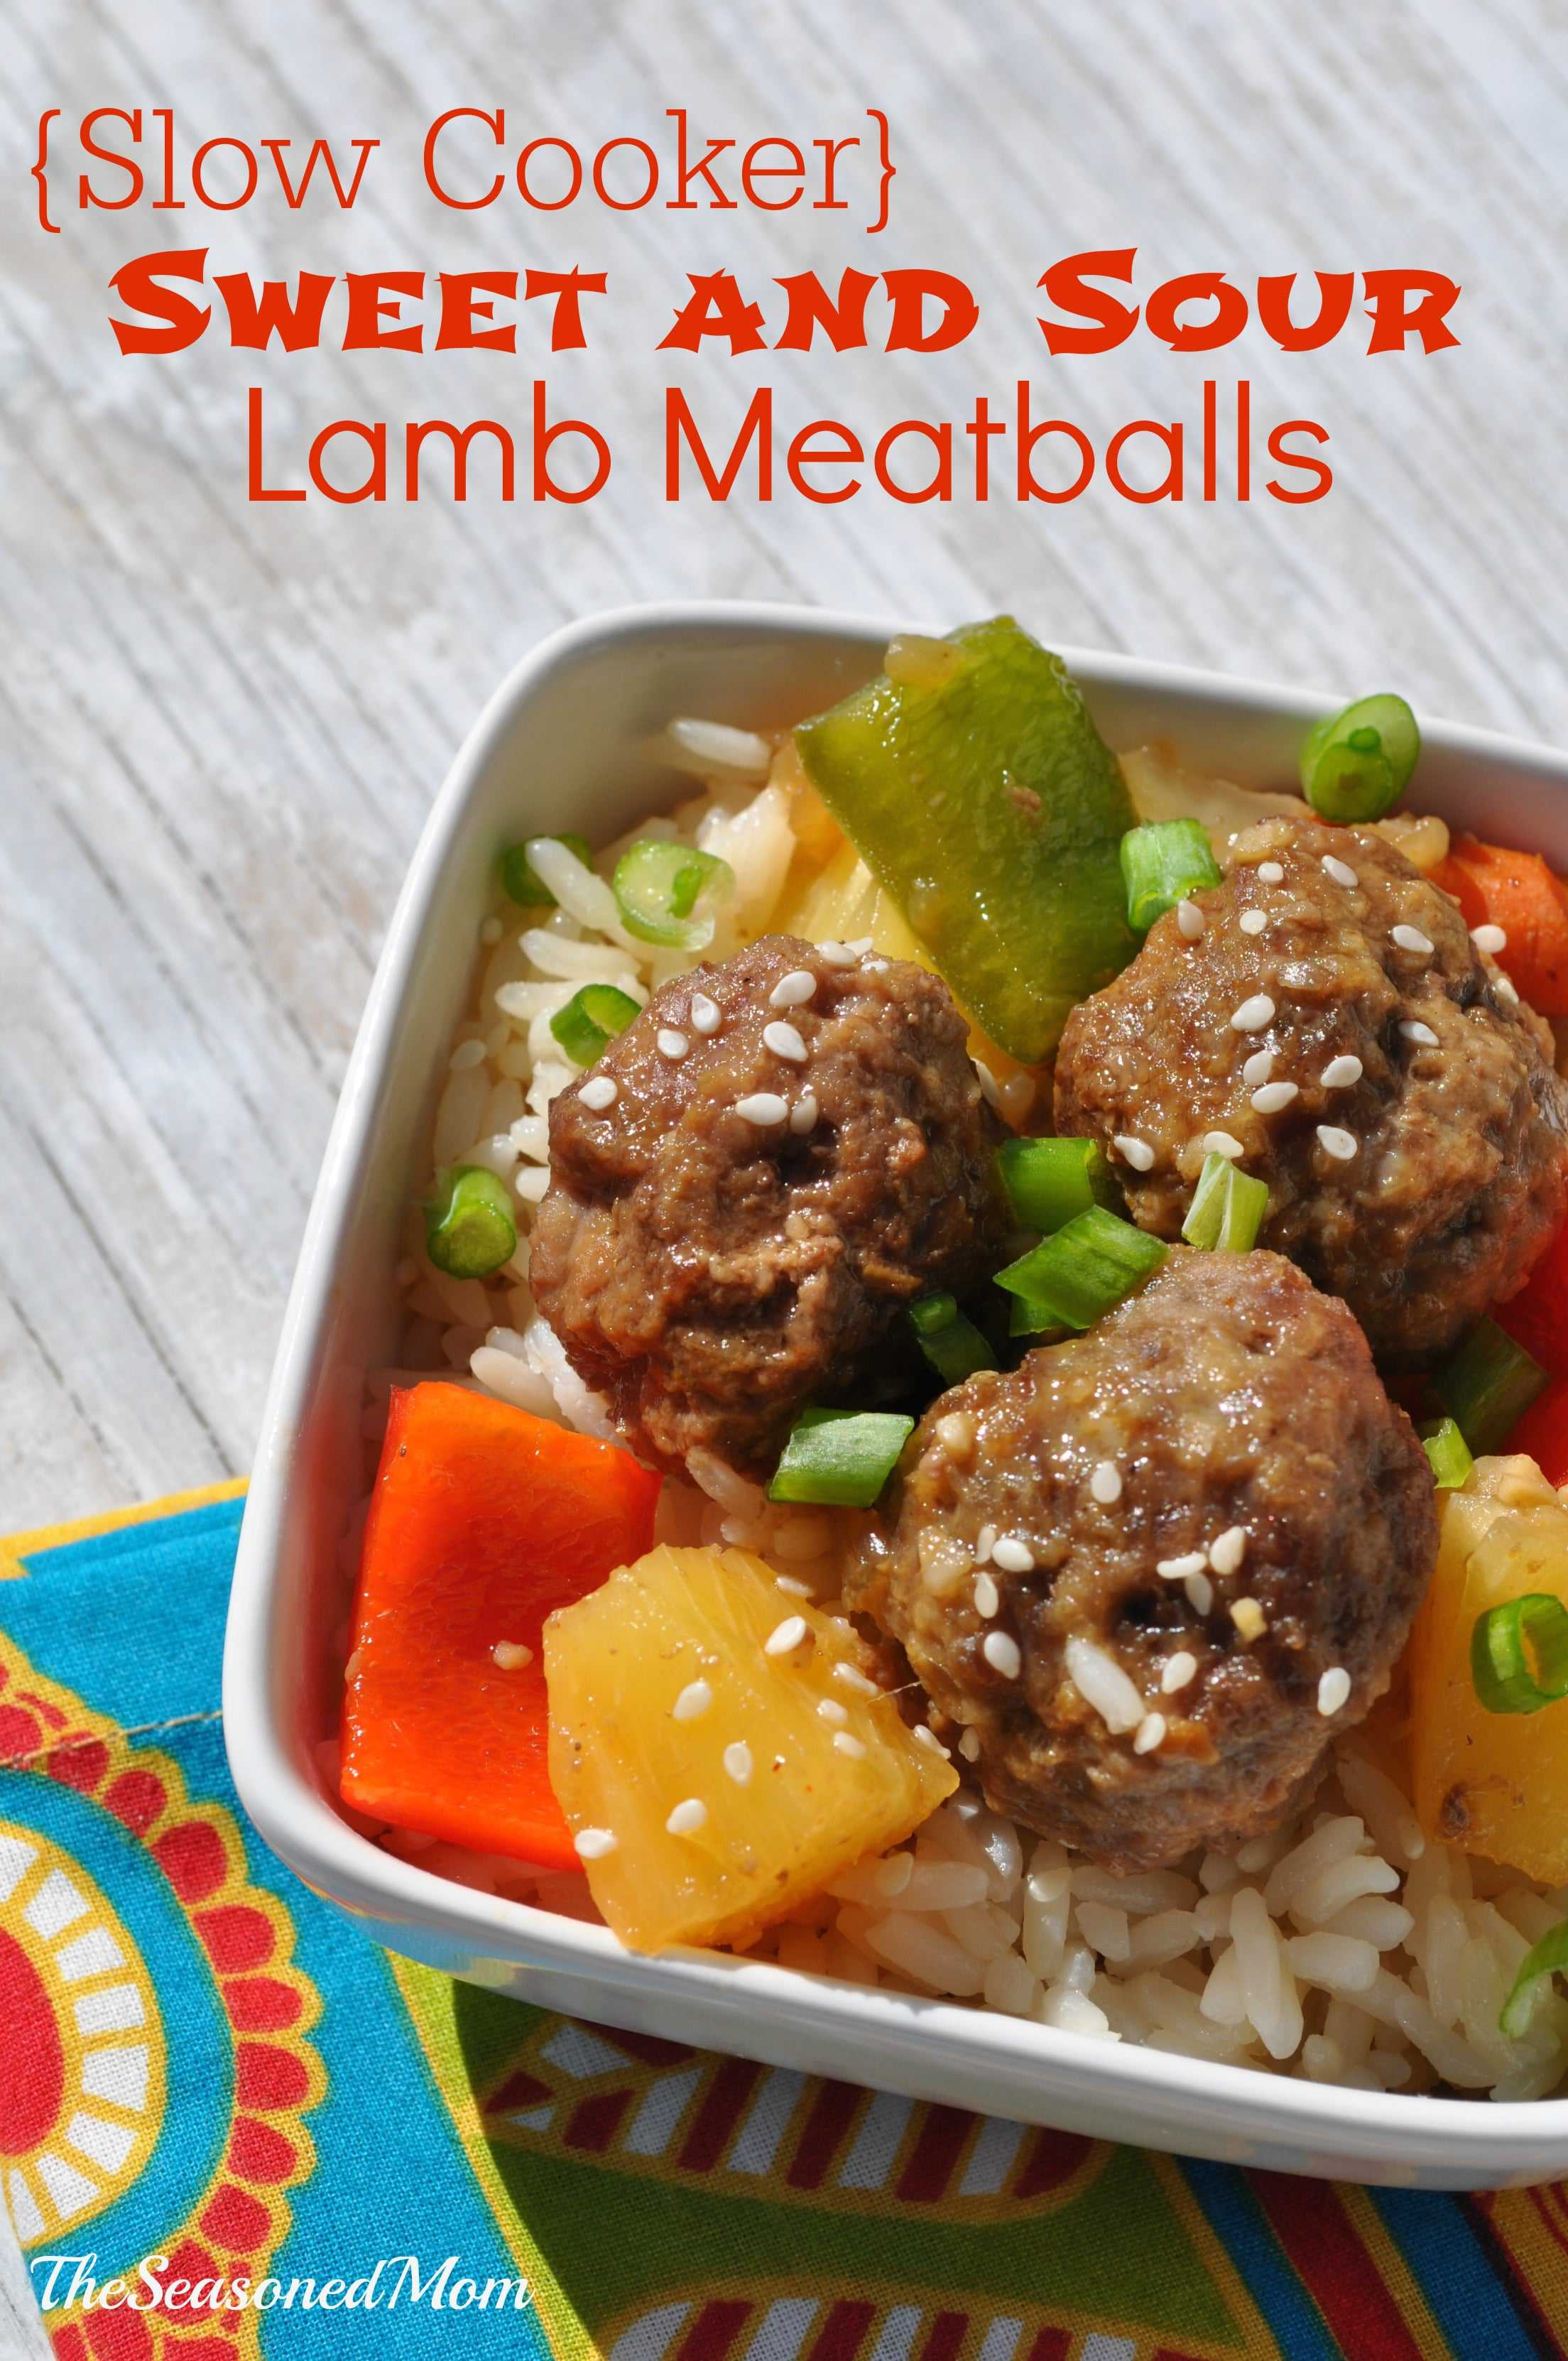 Shape into /2-in. balls. Place meatballs on a greased rack in a 15x10x1-in. baking pan. Bake minutes or until lightly browned. In large bowl, combine tomato sauce, broth, chili sauce, brown sugar and vinegar. Transfer meatballs to a 5-qt. slow cooker. Pour sauce over top. Cook, covered, on low hours or until meatballs are cooked through.4/4(1).